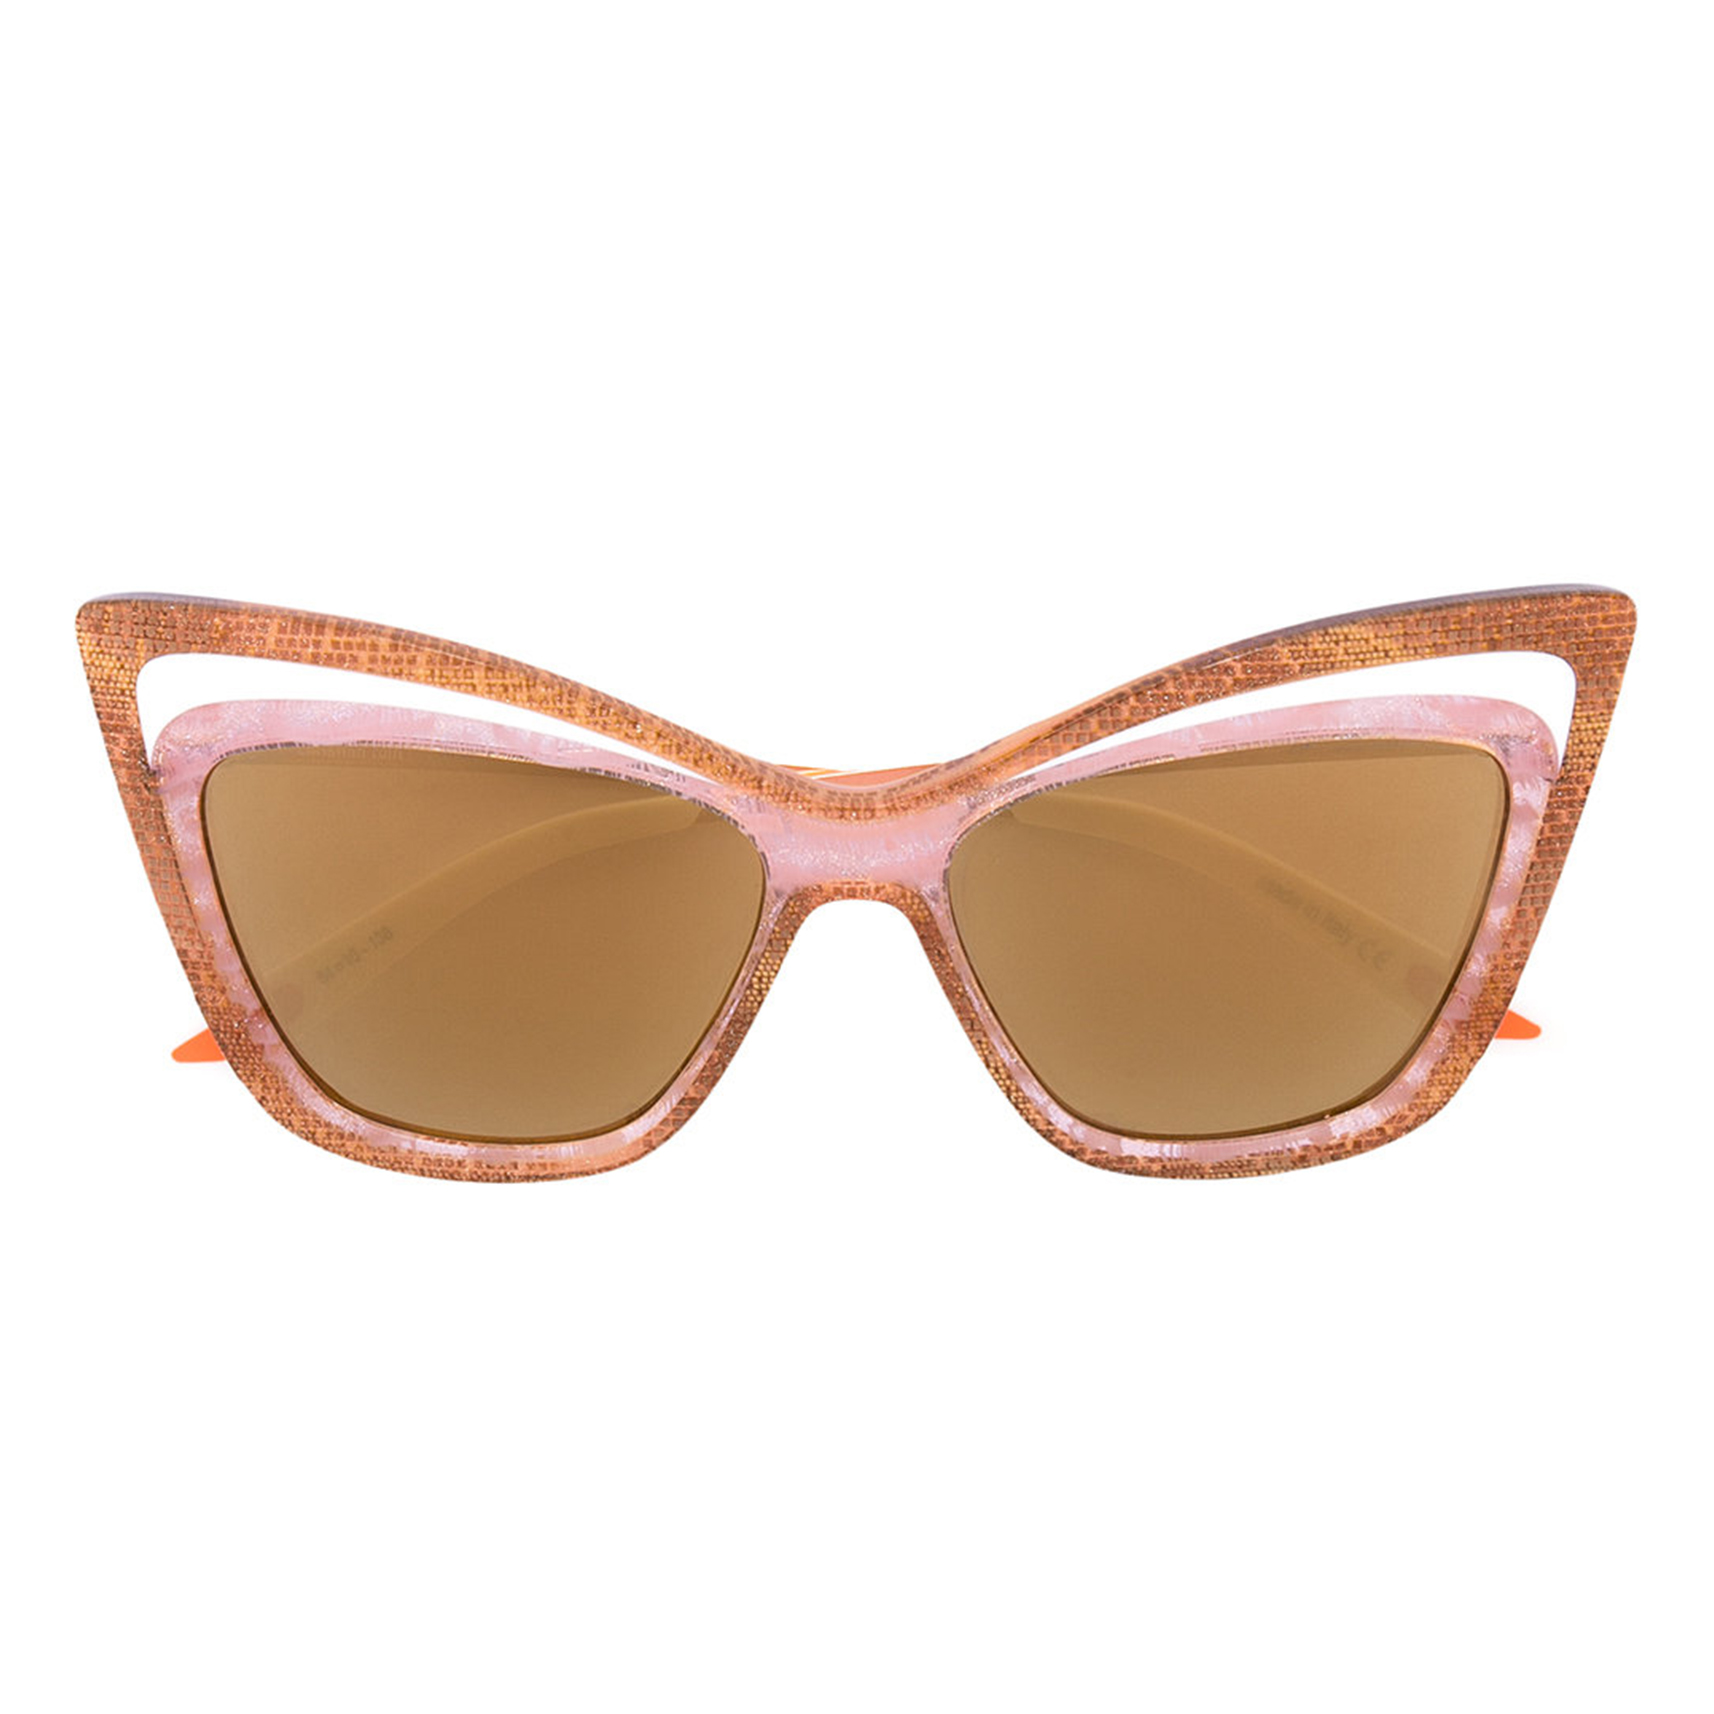 371775285cc Get Your Hands on Christian Roth Eyewear S S 2017 Before They Get ...